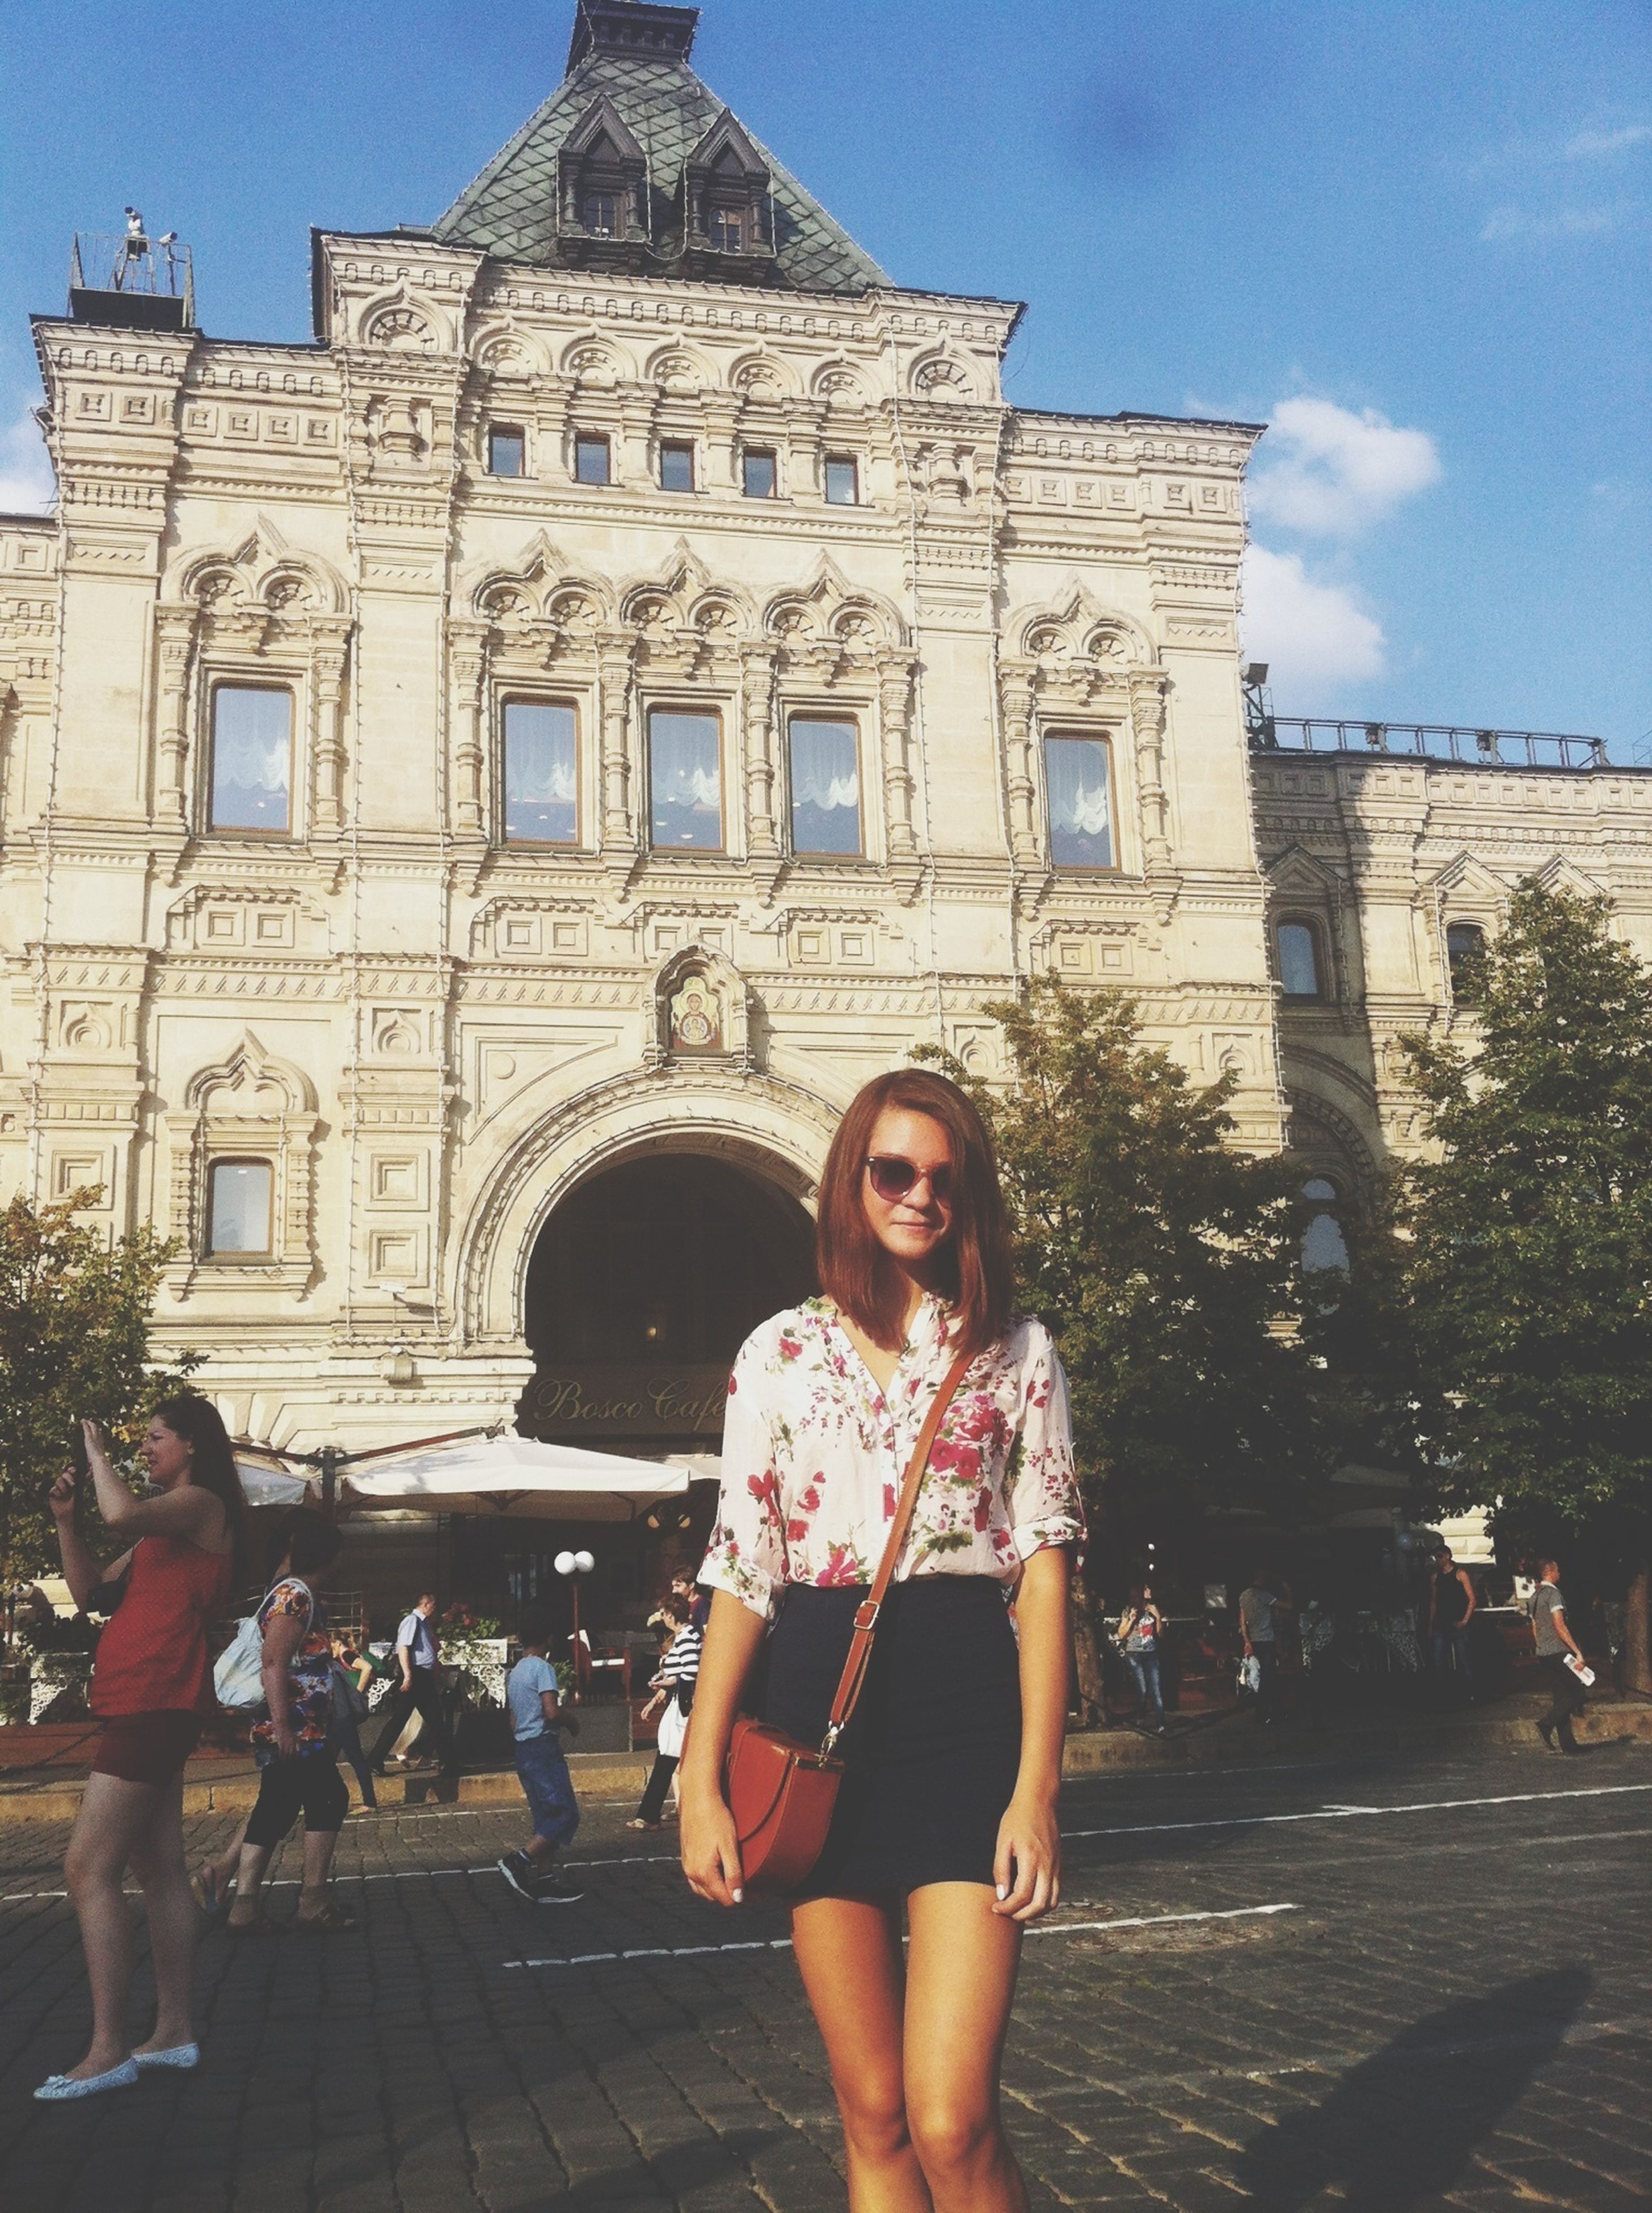 architecture, building exterior, built structure, lifestyles, leisure activity, person, young adult, casual clothing, standing, young women, front view, smiling, portrait, looking at camera, sky, full length, happiness, history